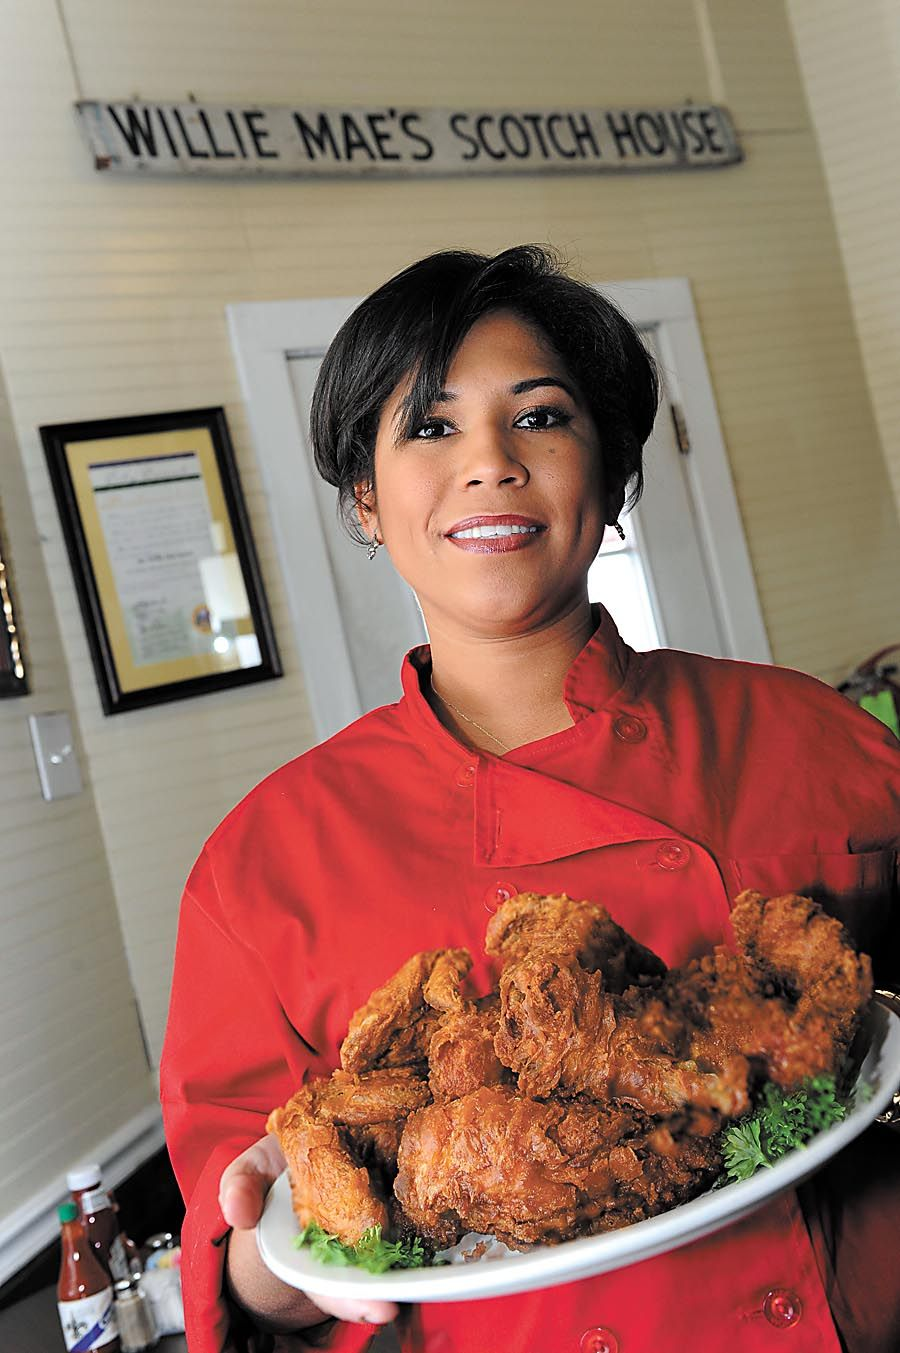 kerry seaton uses her family recipe for fried chicken at willie